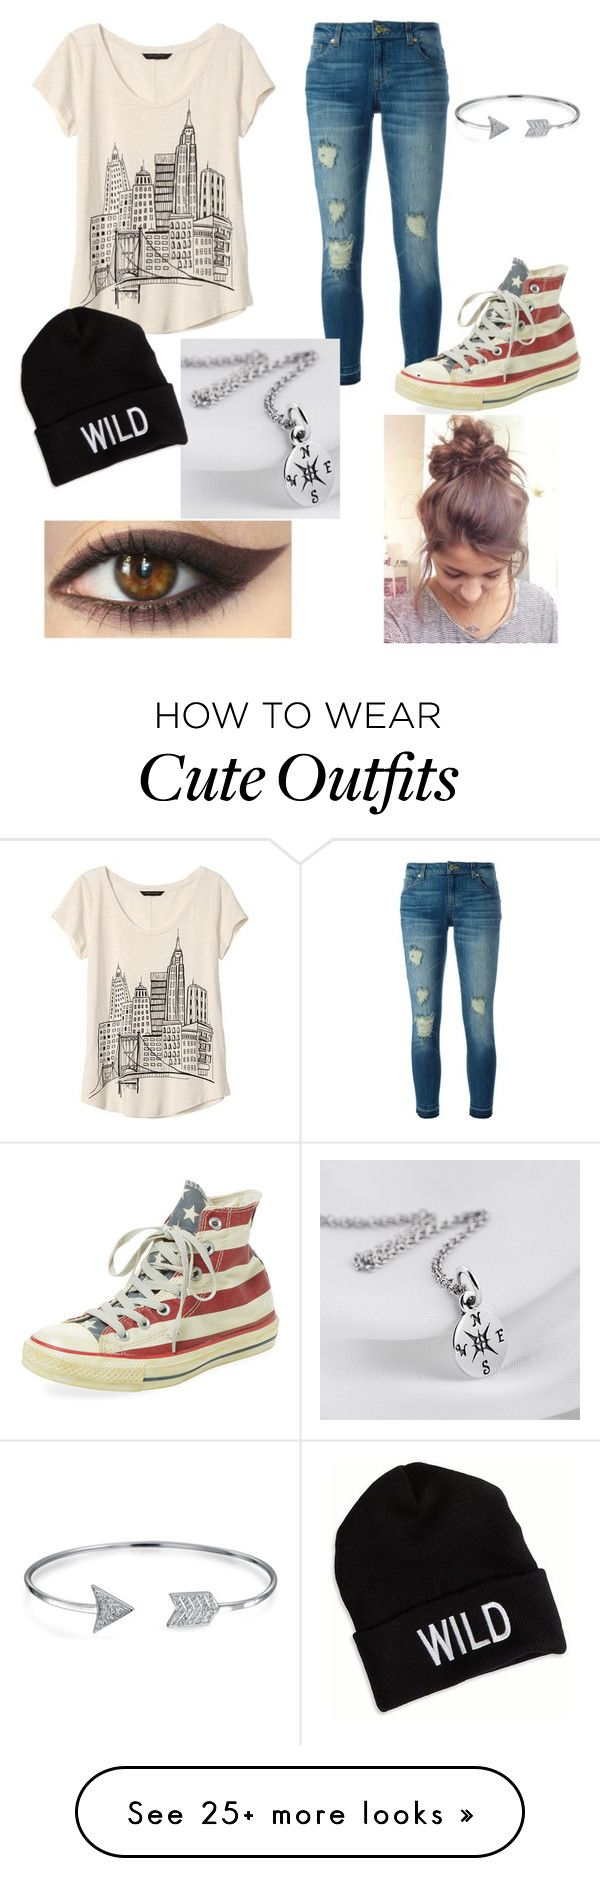 """Back to school outfit #2"" by jayes-julia-hayes on Polyvore featuring MICHAEL Michael Kors, Banana Republic, Converse, American Eagle Outfitters and Bling Jewelry"